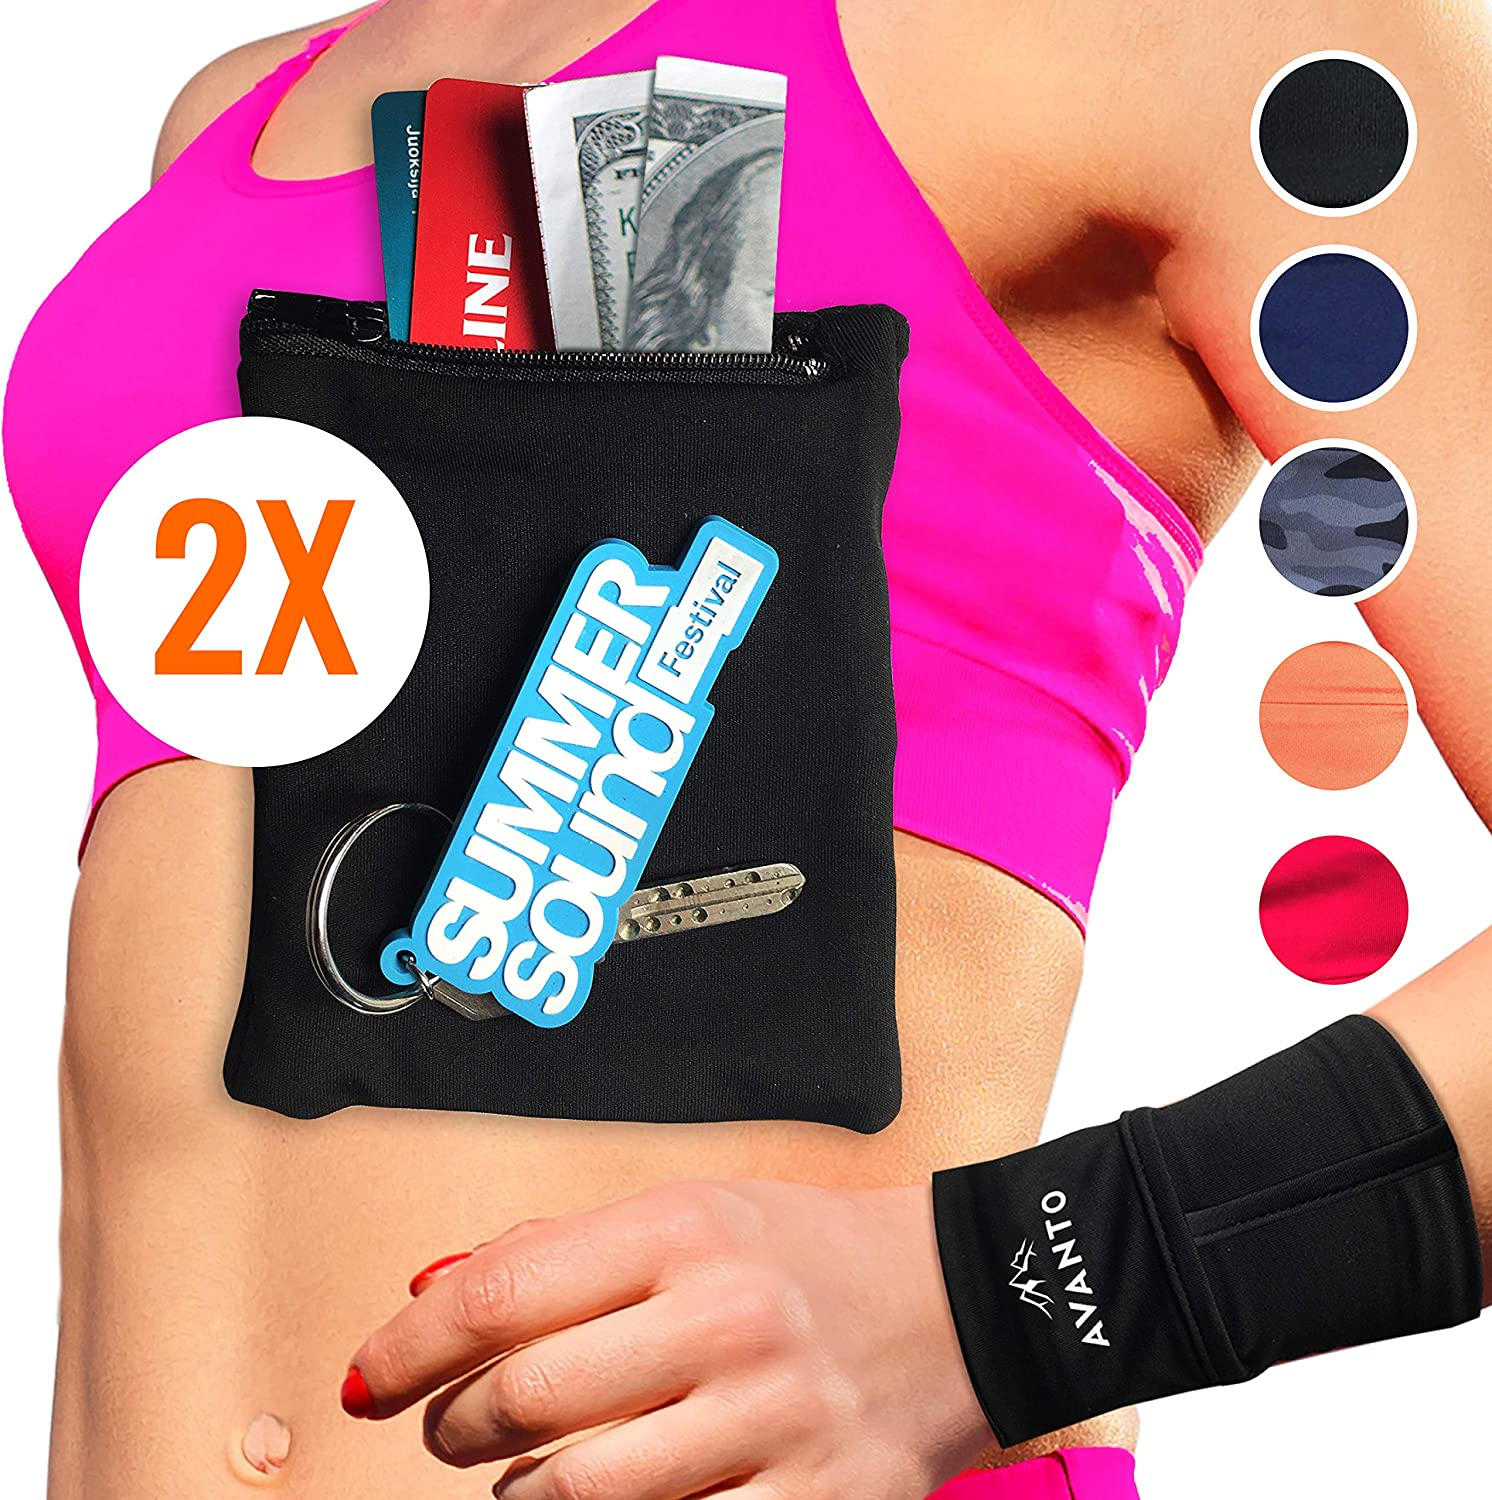 AVANTO Ninja Wrist Wallet, Ankle Wallet, Sweat Bands, Armband, Hidden Pouch, Wristlet Wallet for Travel, Running Pouch for Your Running Accessories, ...